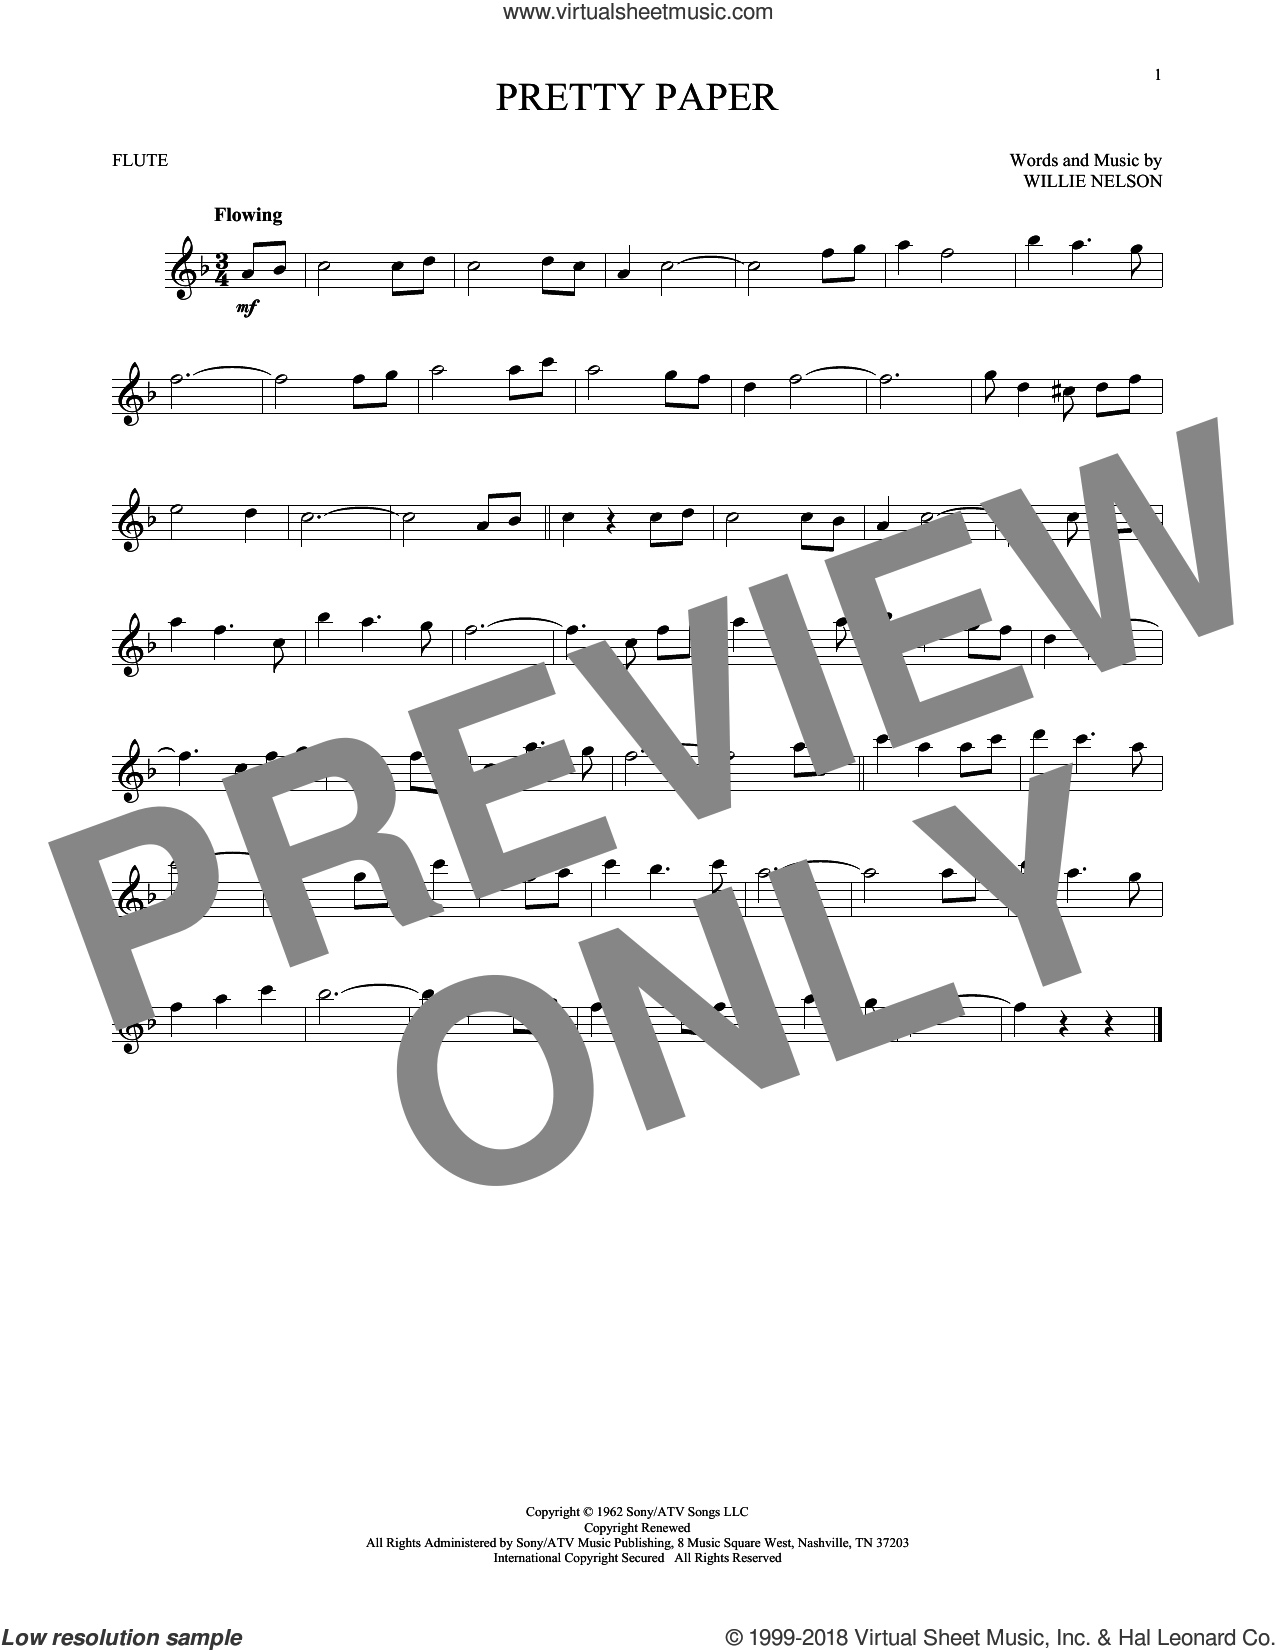 Pretty Paper sheet music for flute solo by Willie Nelson, intermediate skill level